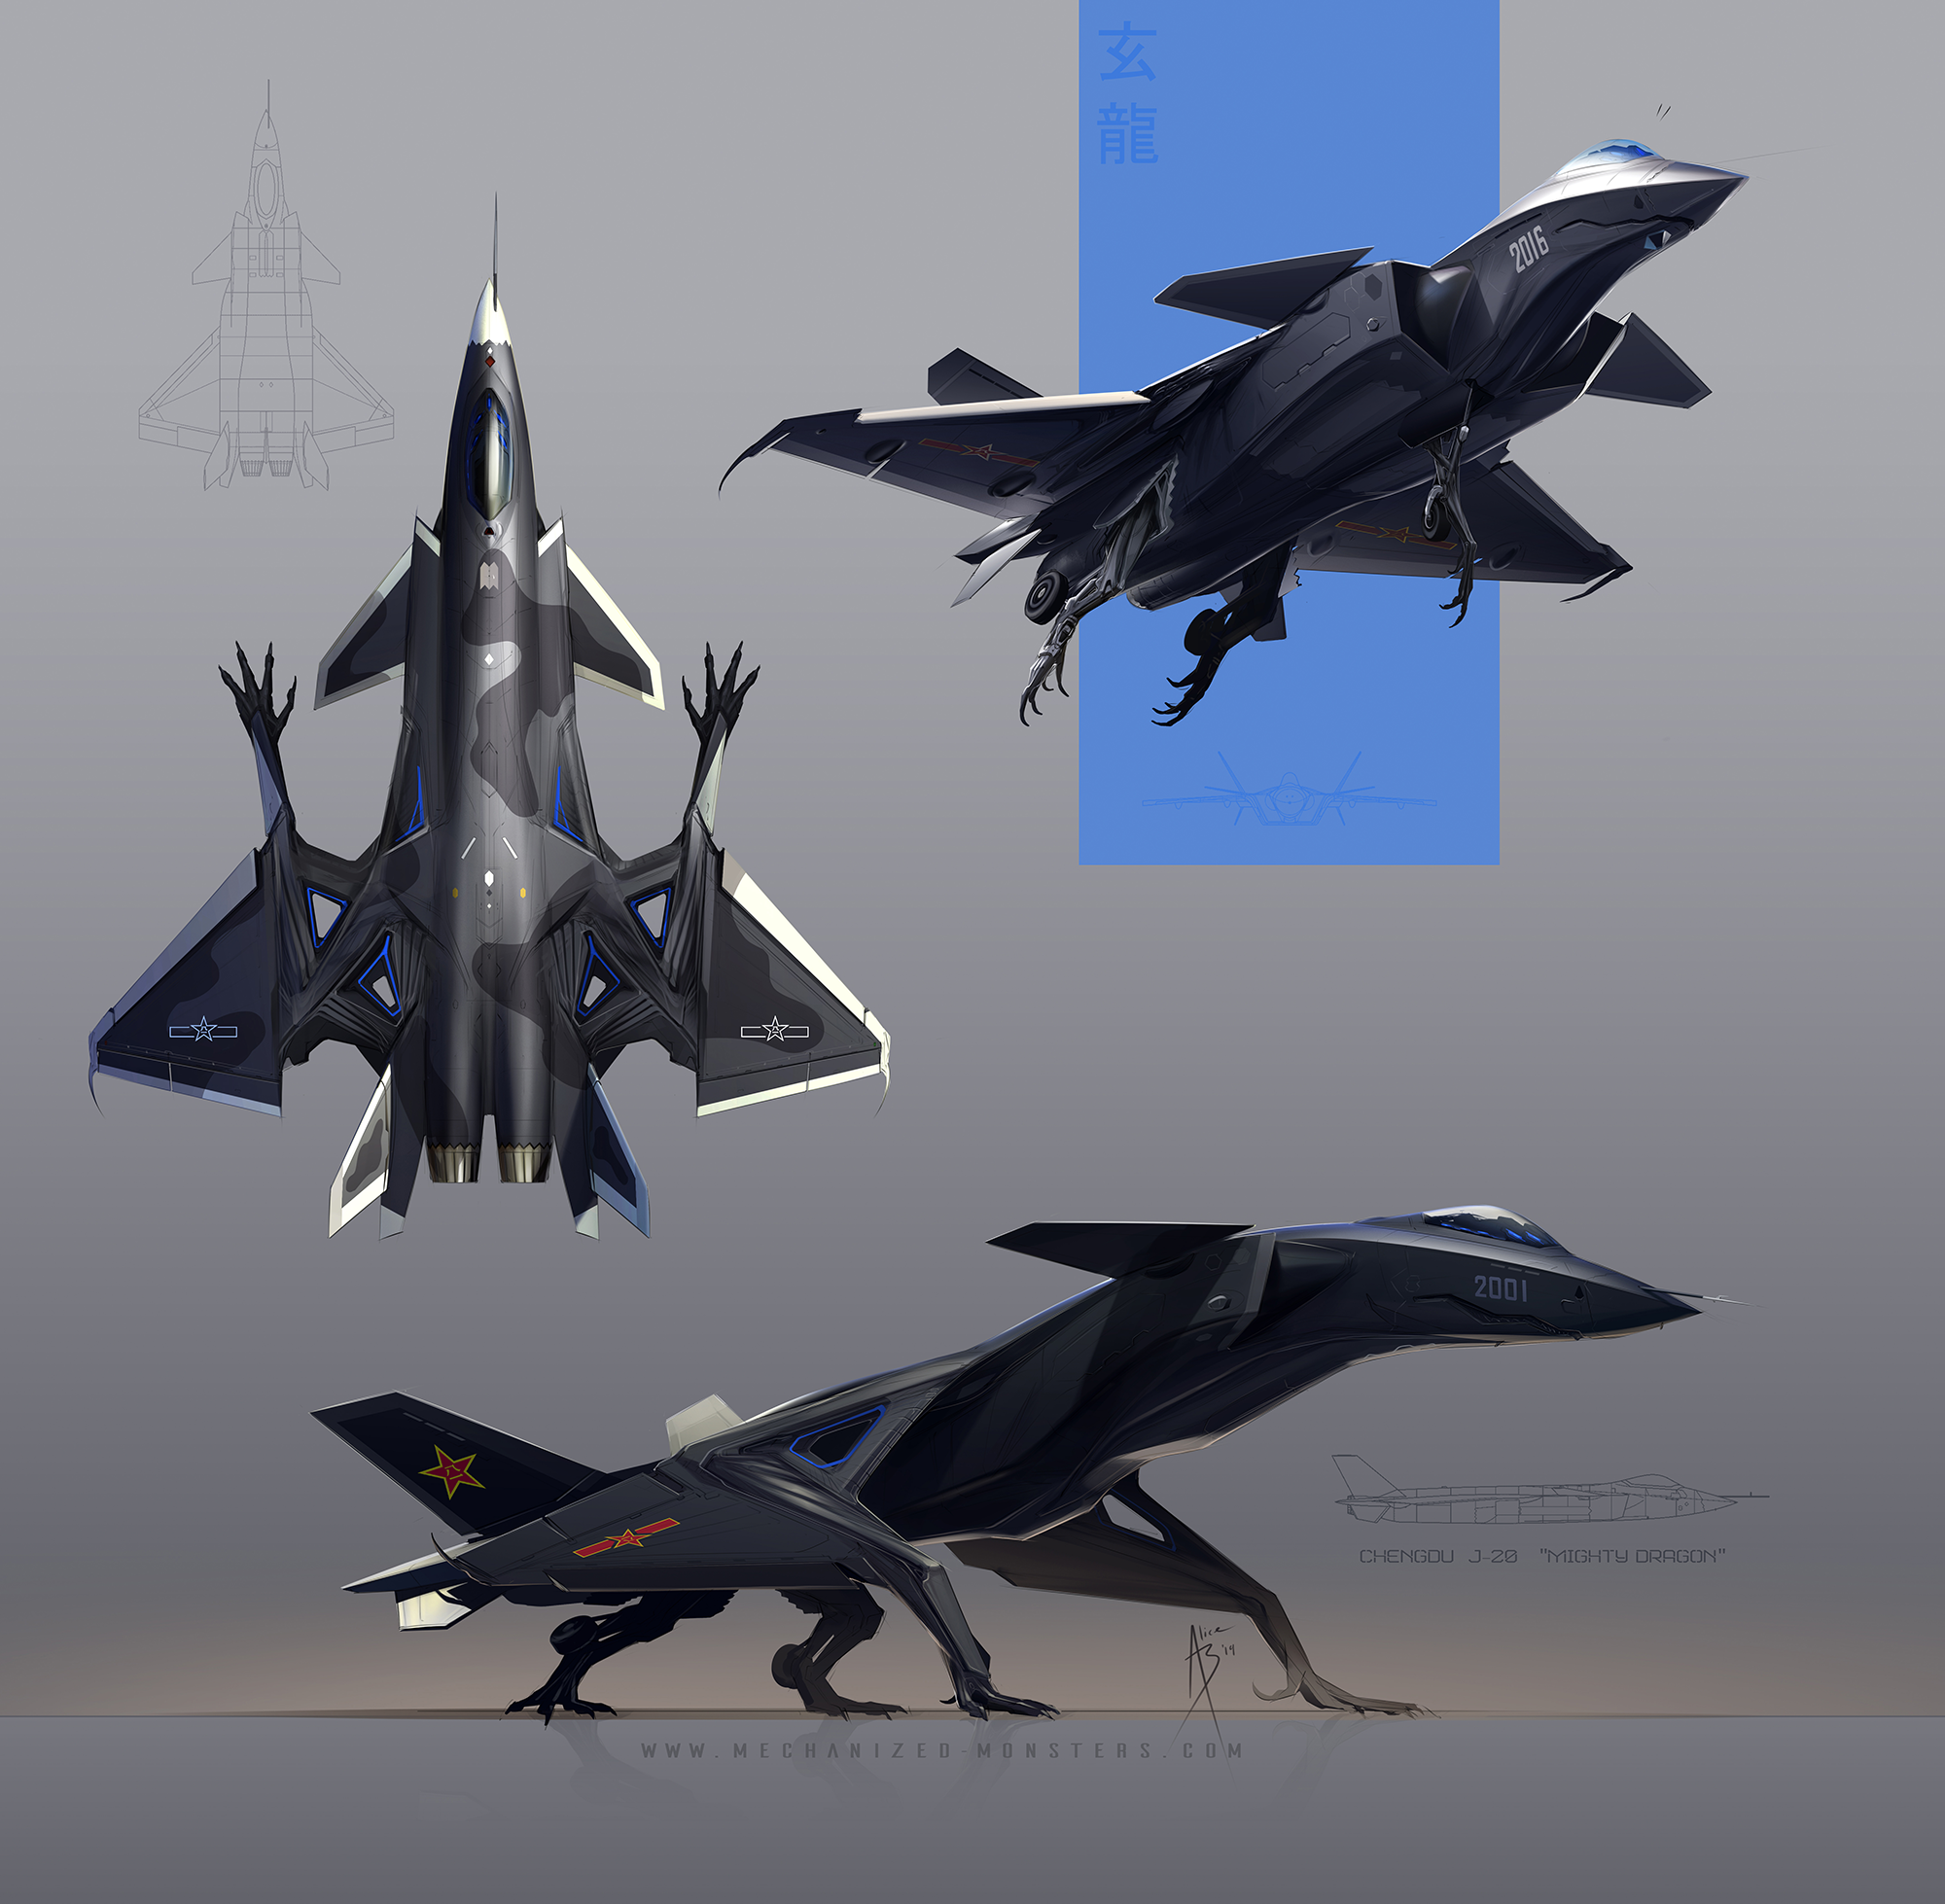 2019_01_26_XUANGLONG_J-20-doodles_layout-marked-2000.png